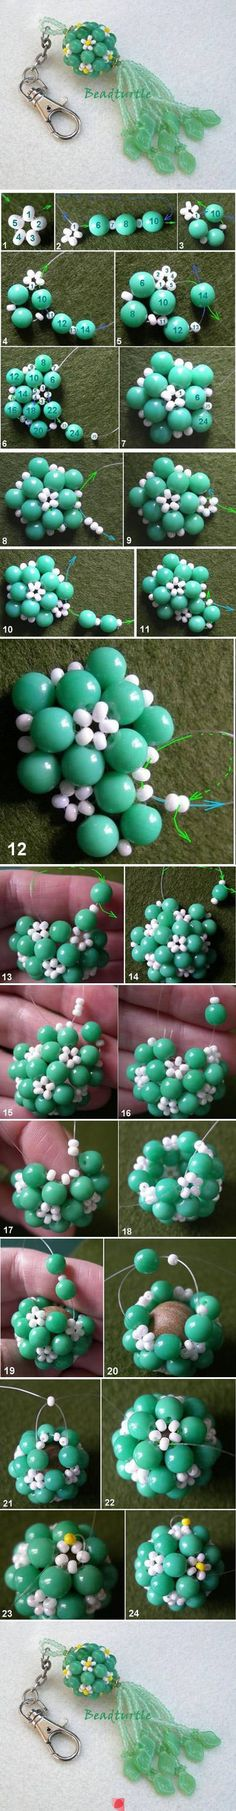 Beaded daisy ball for pendants tutorial.